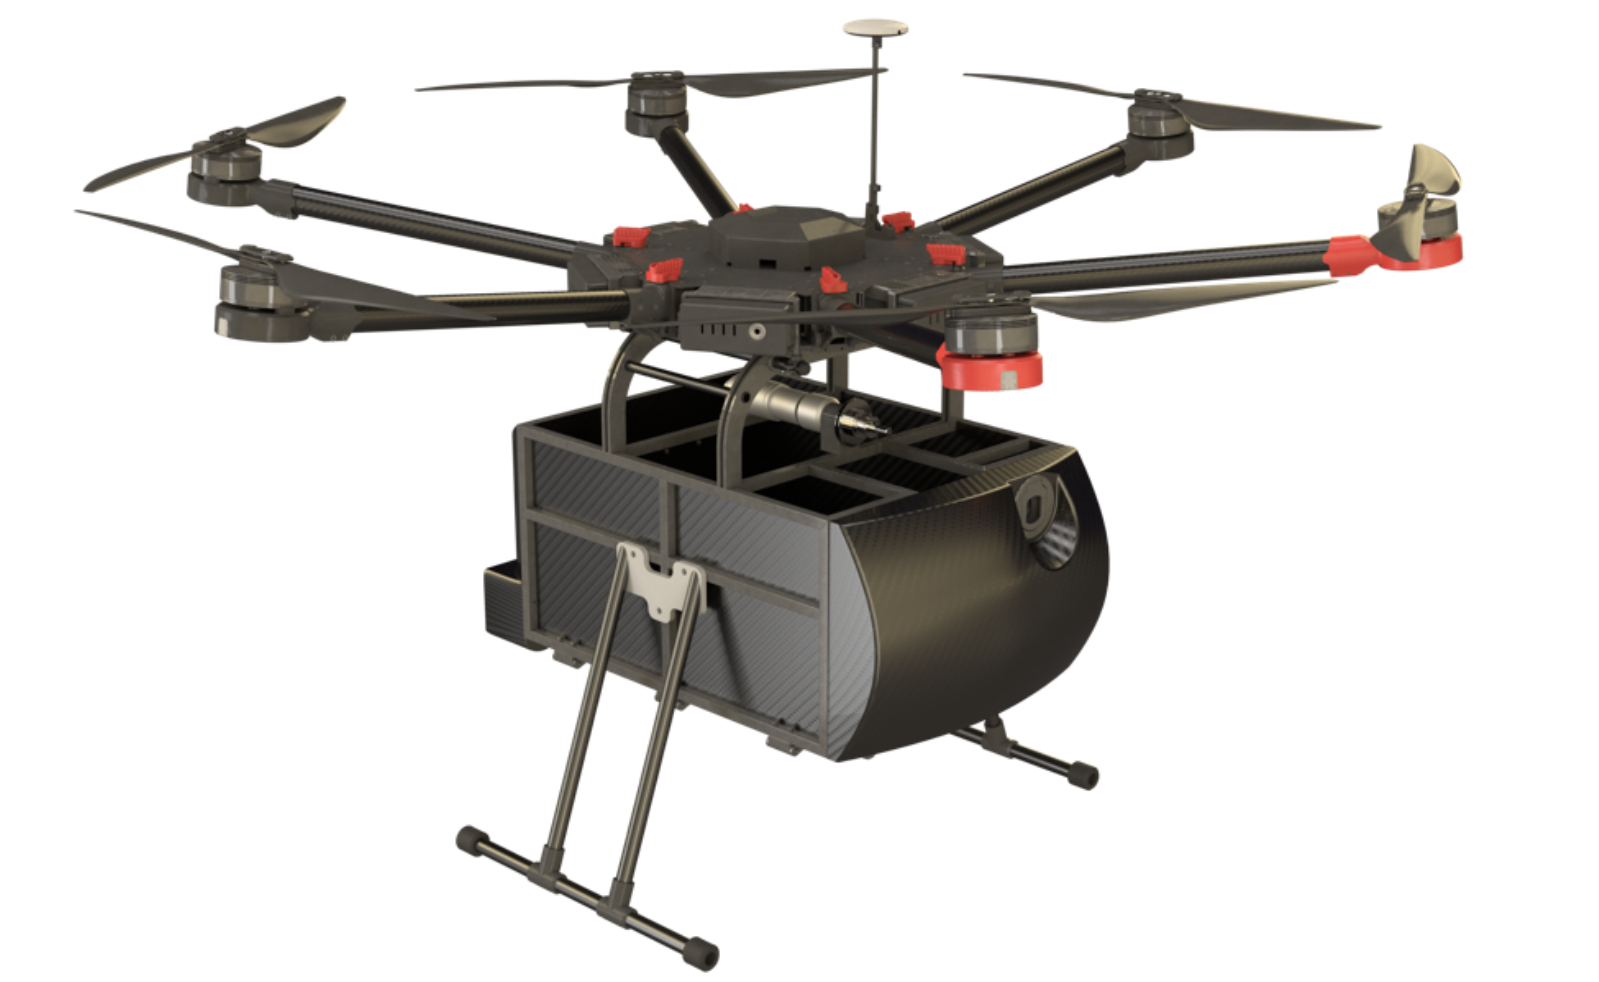 drones with camera and gps with Flytrex Manages Drone Delivery From Store To Door on 218 Garnish List Carbon Kevlar New Honda Vario 125150 Esp in addition lightcense together with Dji Matrice 200 Drone likewise F 1442110 Log3483073584061 as well China Better Professional Solar Drone With 60424419598.